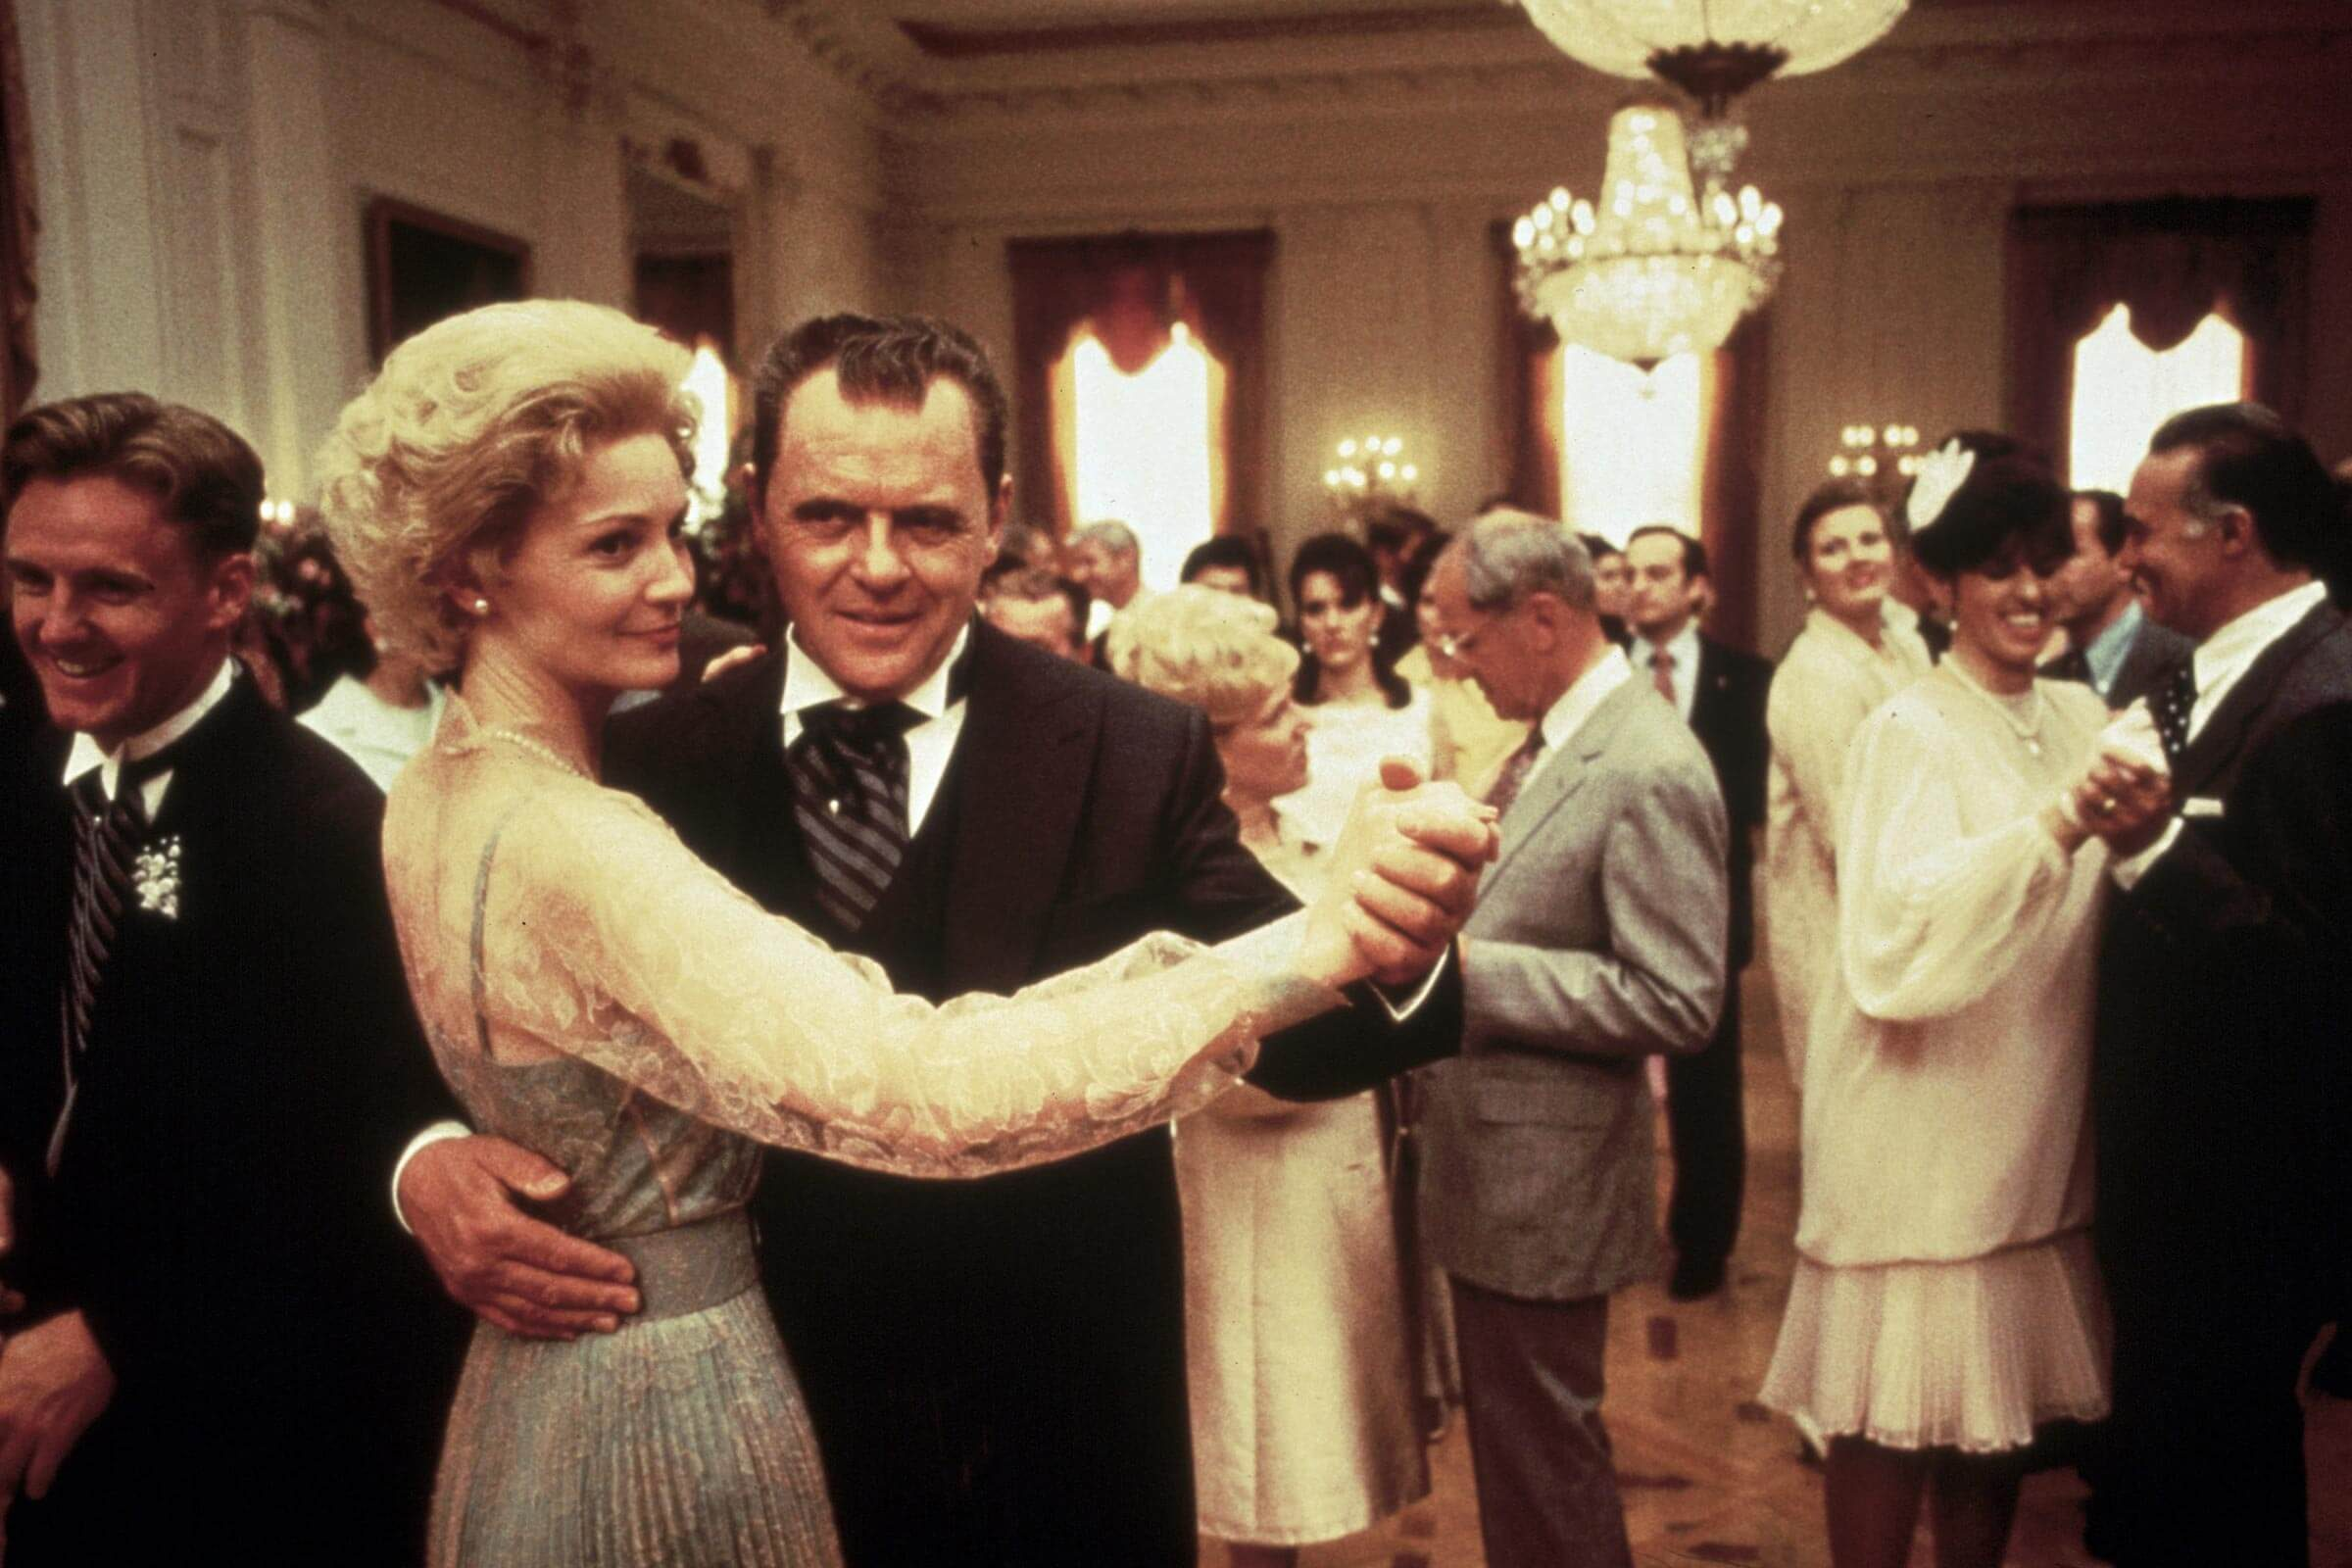 FILM STILLS OF 'NIXON' WITH 1995, JOAN ALLEN, ANTHONY HOPKINS, OLIVER STONE IN 1995